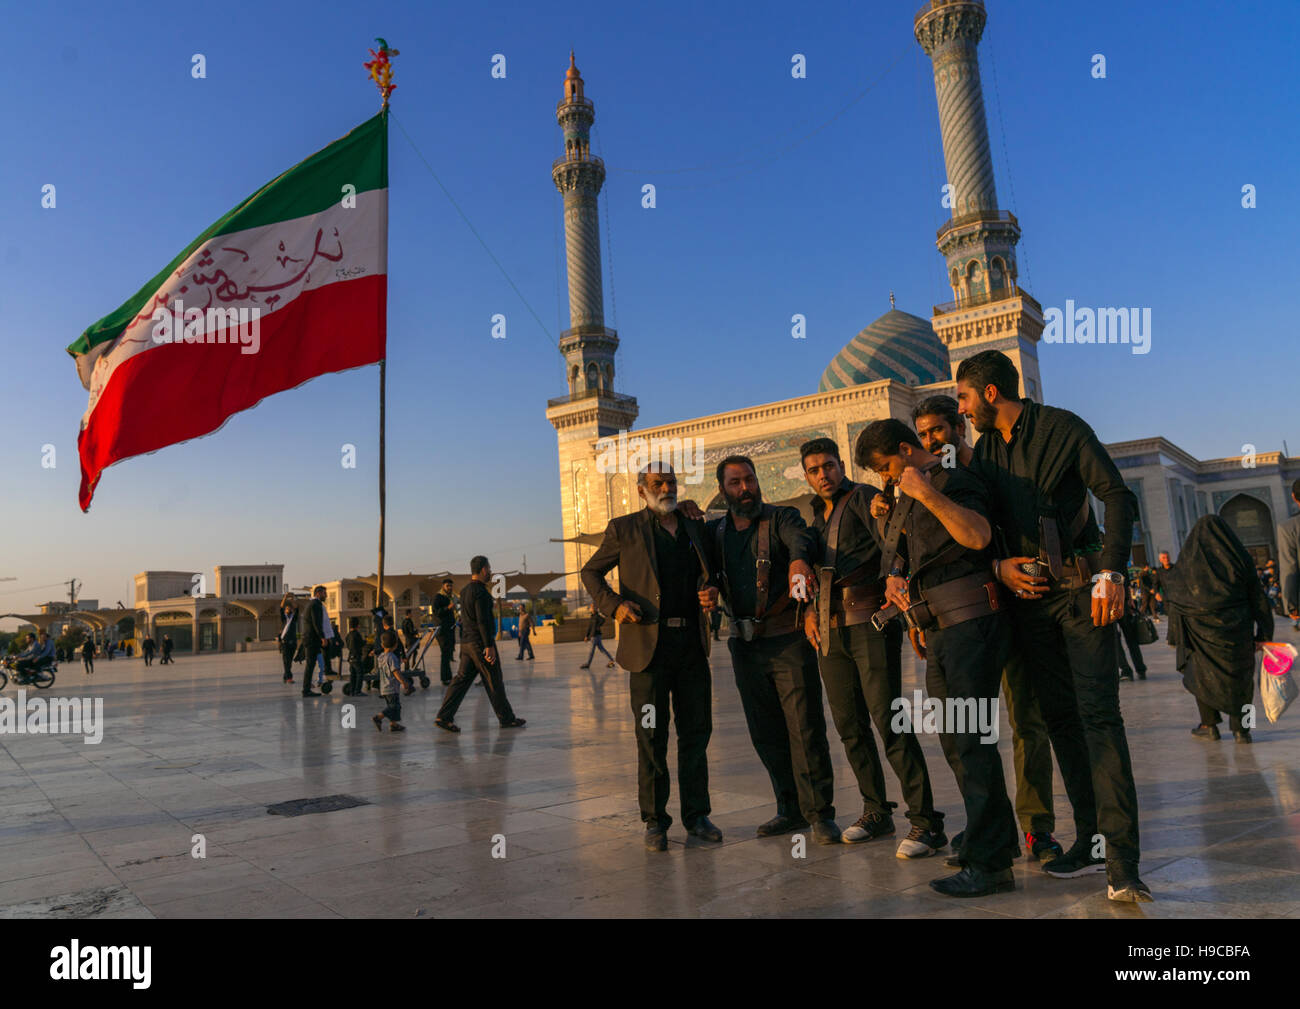 Alam carriers posing in front of imam hassan mosque during muharram, Central county, Qom, Iran - Stock Image